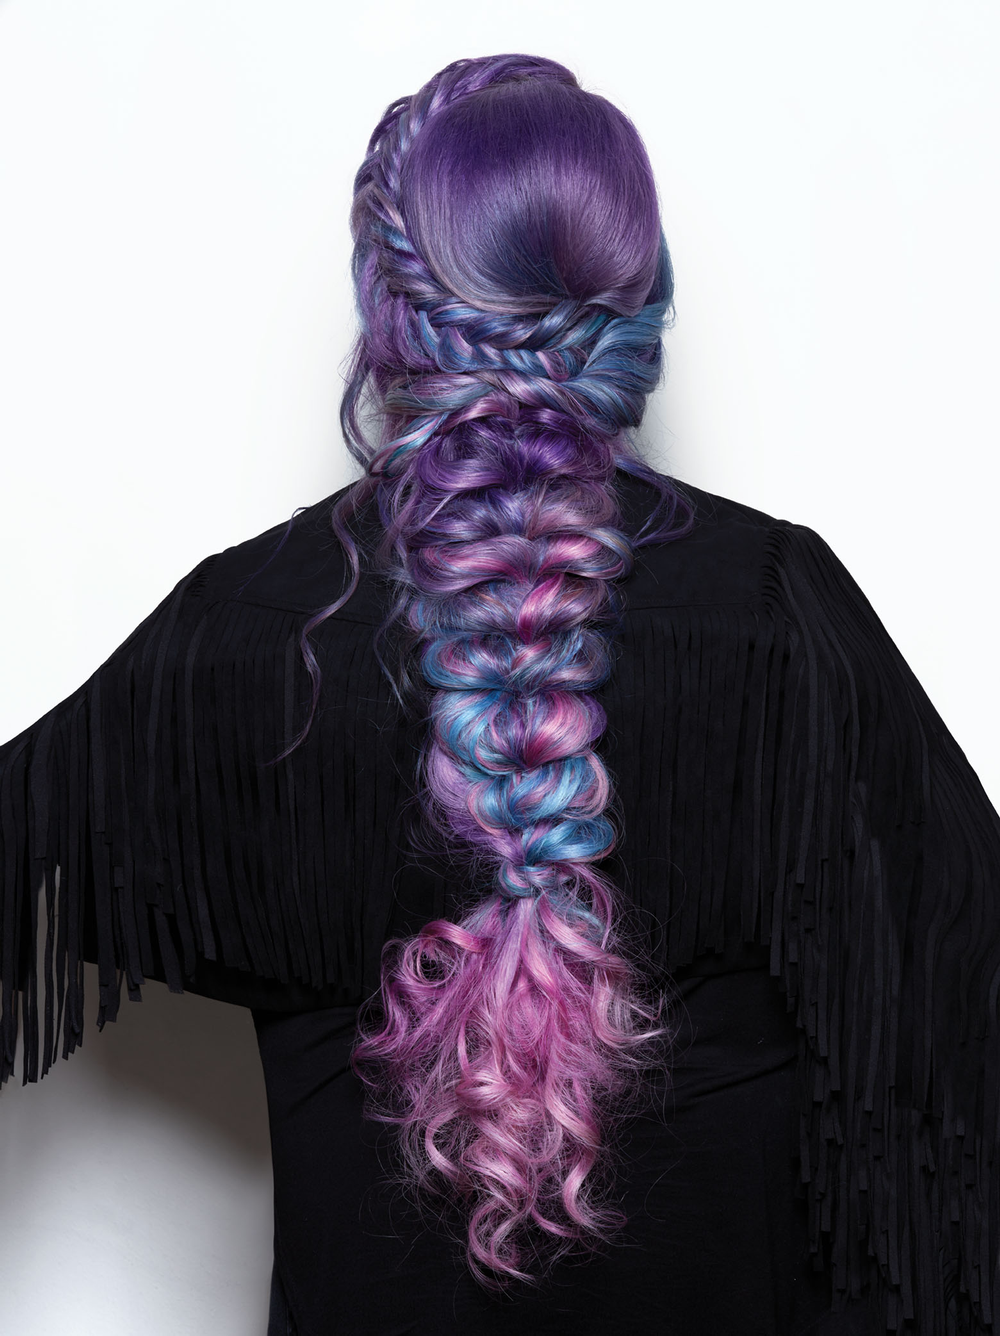 <p>Hair: <strong>Nora Dababneh andAlexandra Wilson</strong> for R+Co and Great Lengths</p> <p>Photographer: Roberto Ligresti</p> <p>Makeup: David Maderich and Jacquelyn Jordan</p> <p>Nails: Galyna Poczciwinski</p>